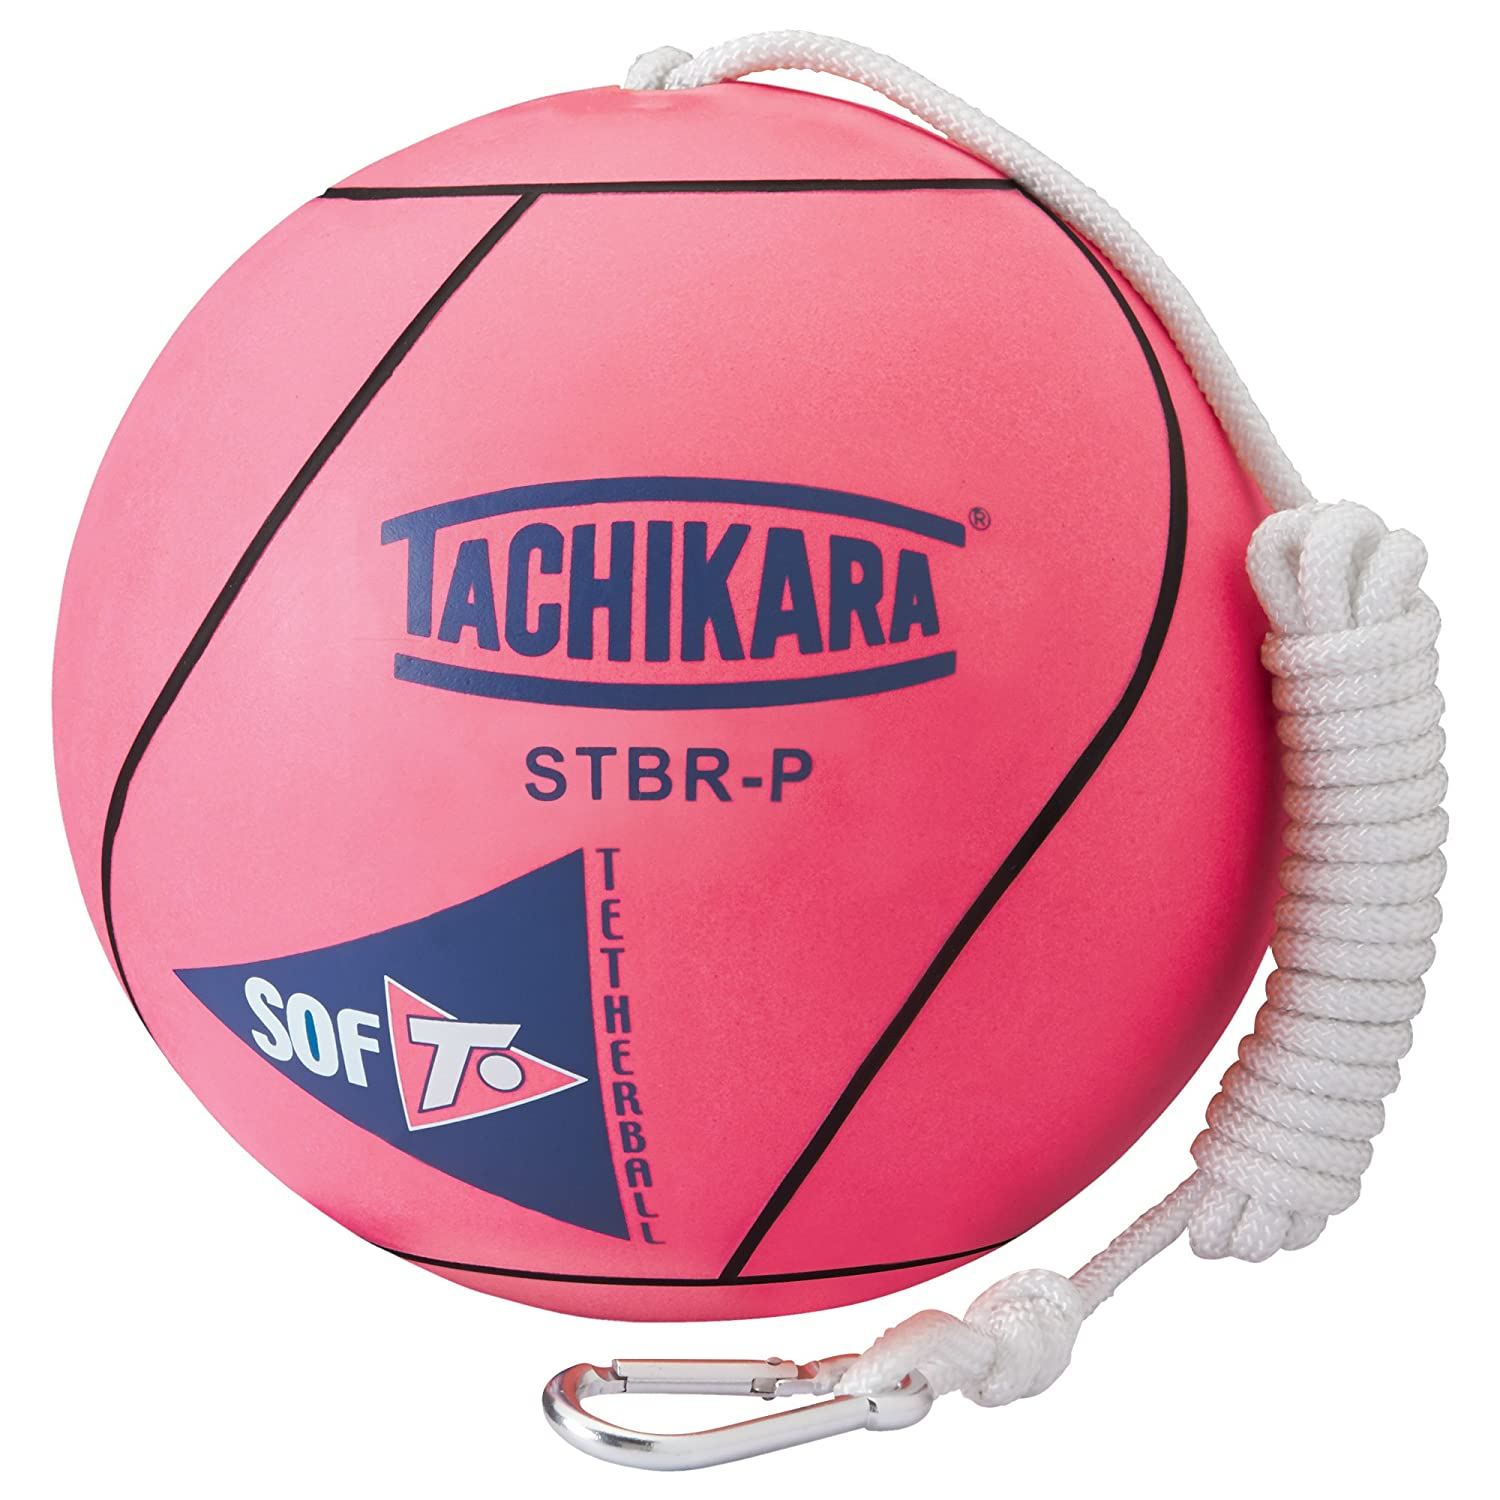 Tachikara STBR-P extra soft tetherball (pink).